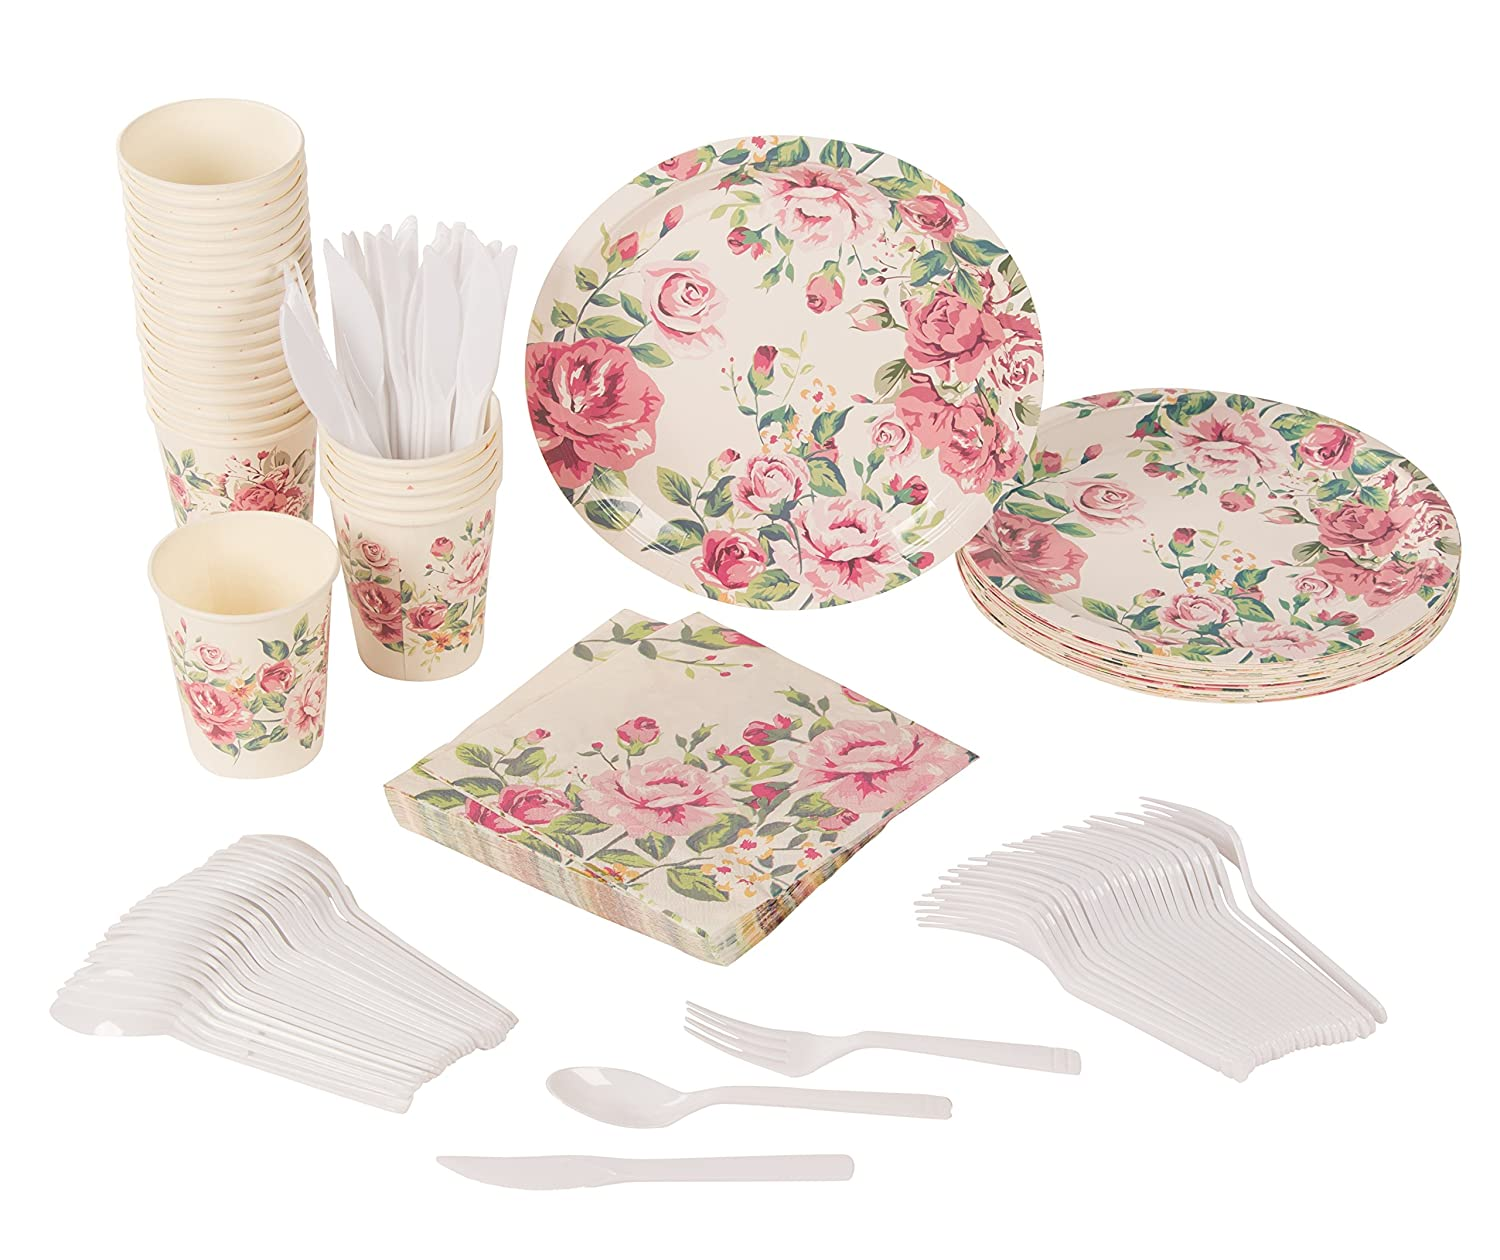 Disposable Dinnerware Set - Serves 24 - Vintage Floral Party Supplies for Birthdays, Bridal Showers, Weddings - Includes Plastic Knives, Spoons, Forks, Paper Plates, Napkins, Cups